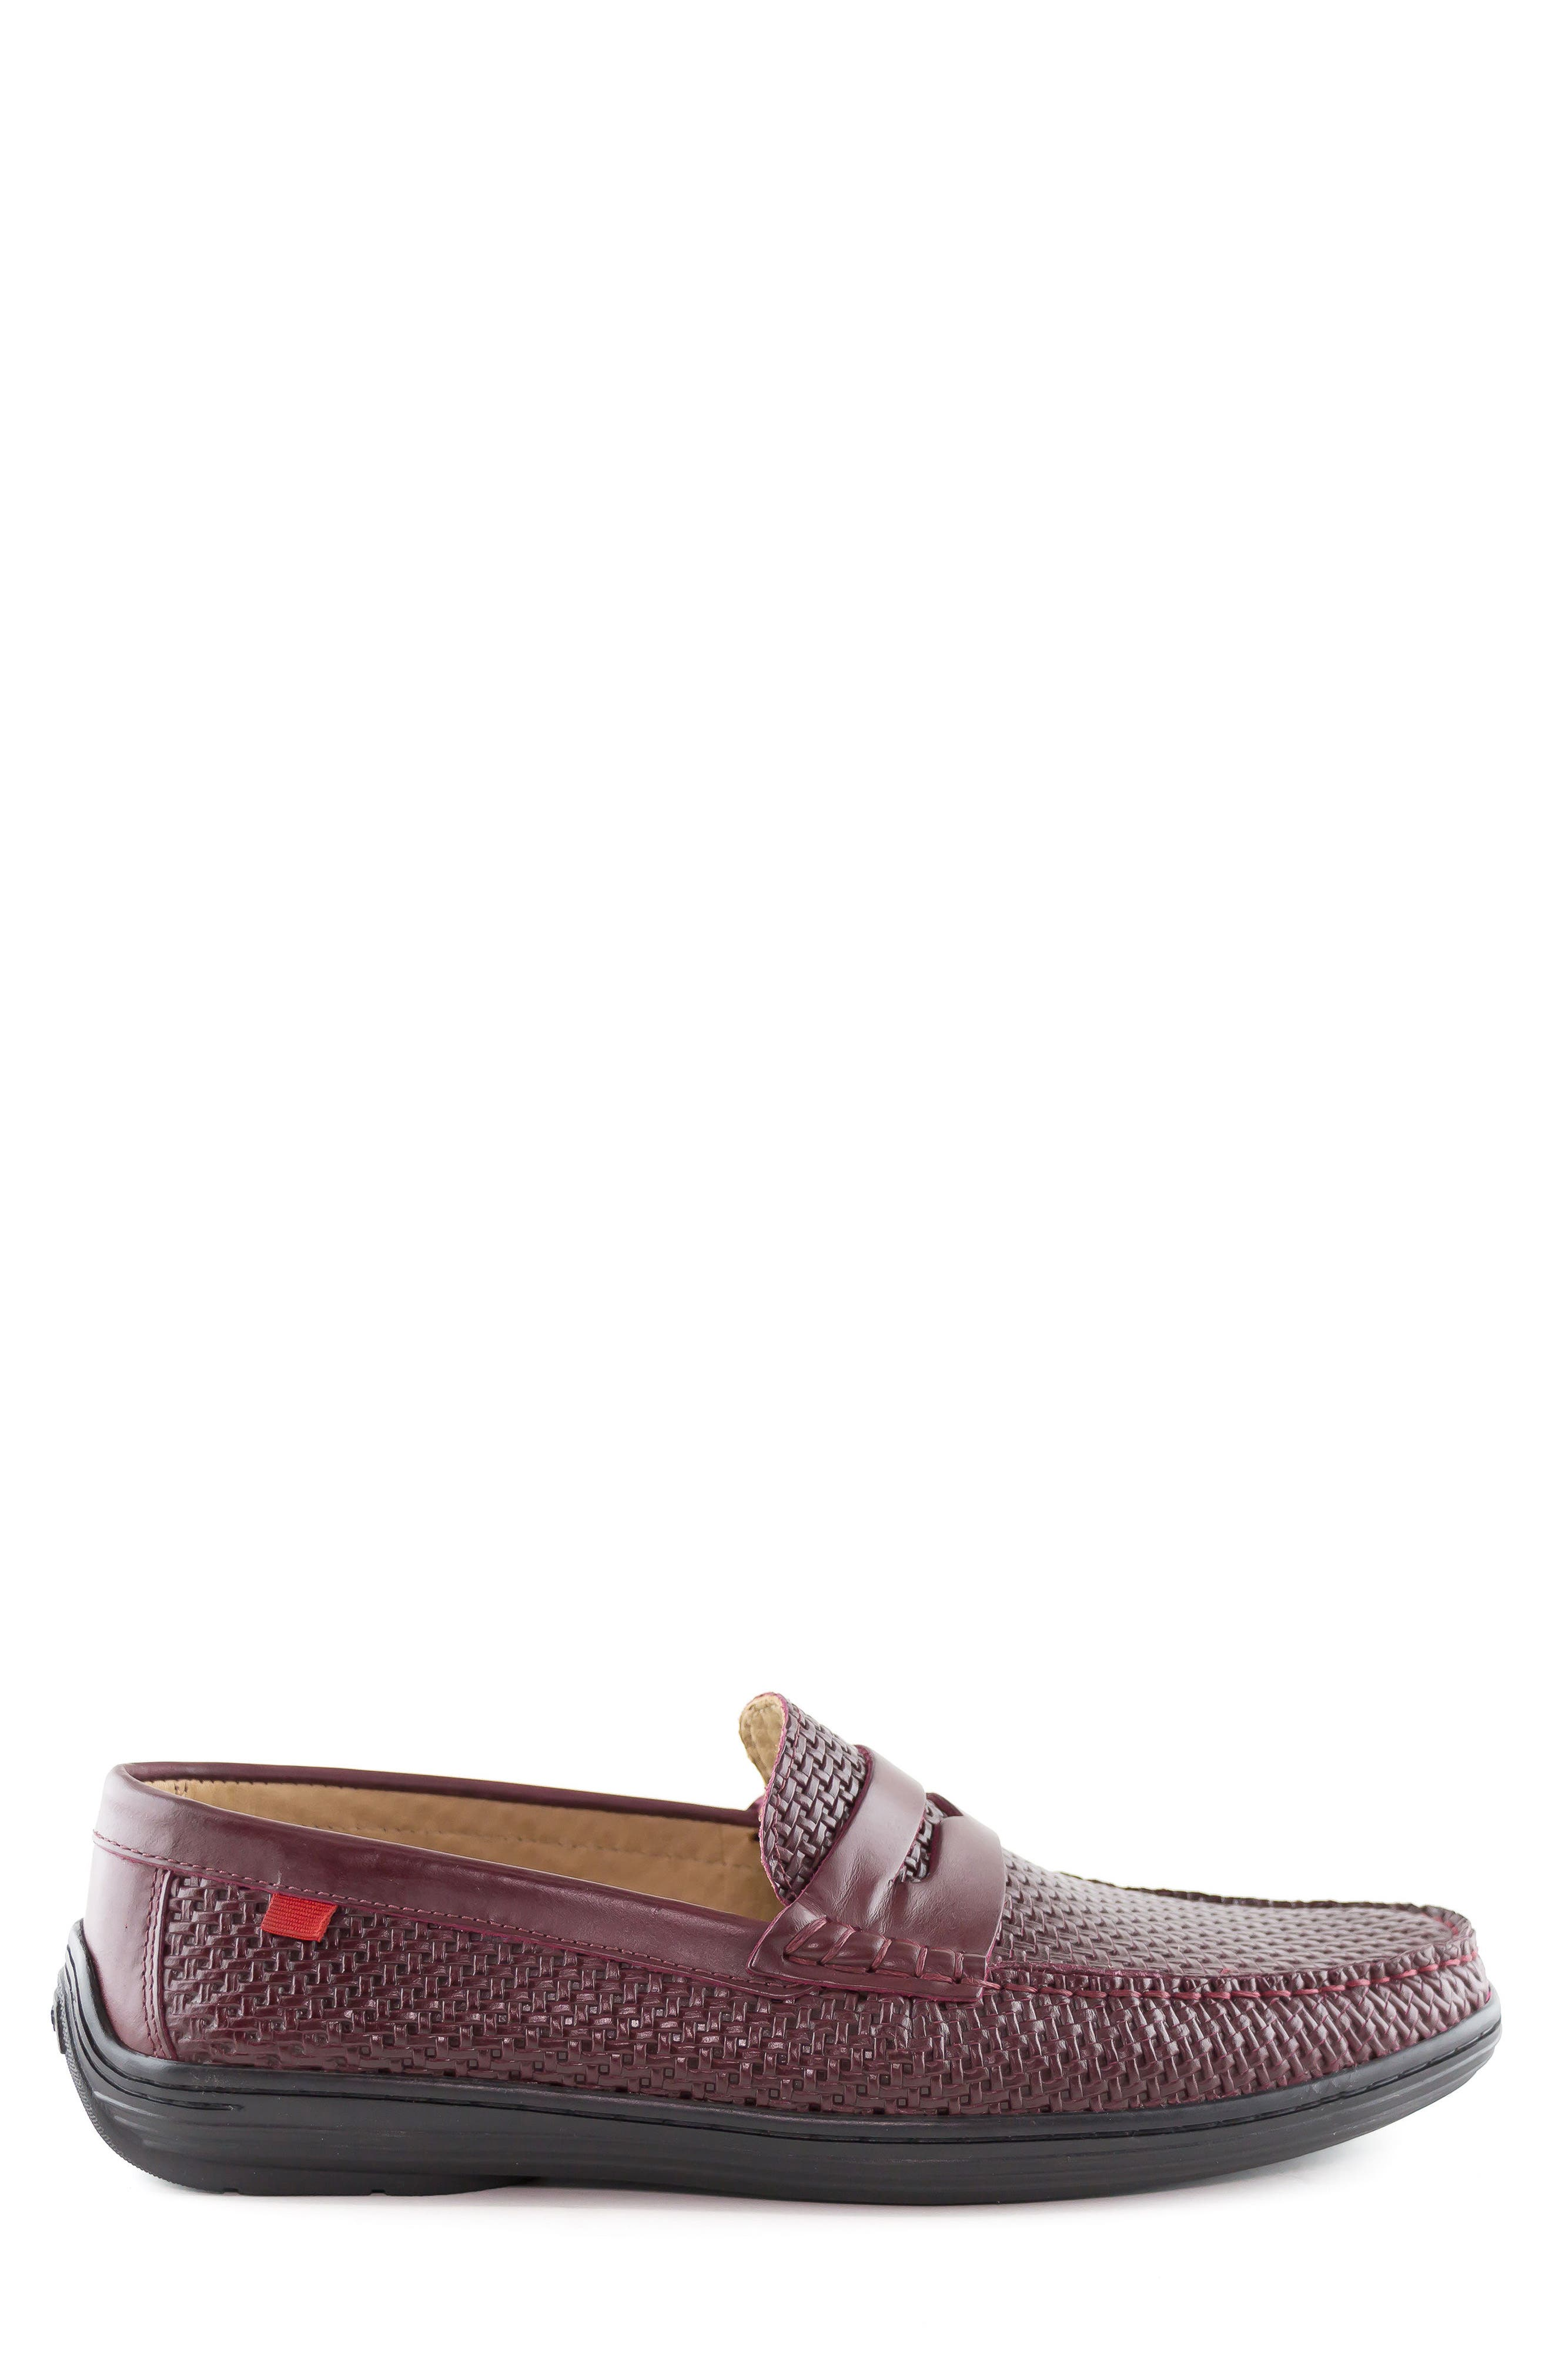 Atlantic Penny Loafer,                             Alternate thumbnail 21, color,